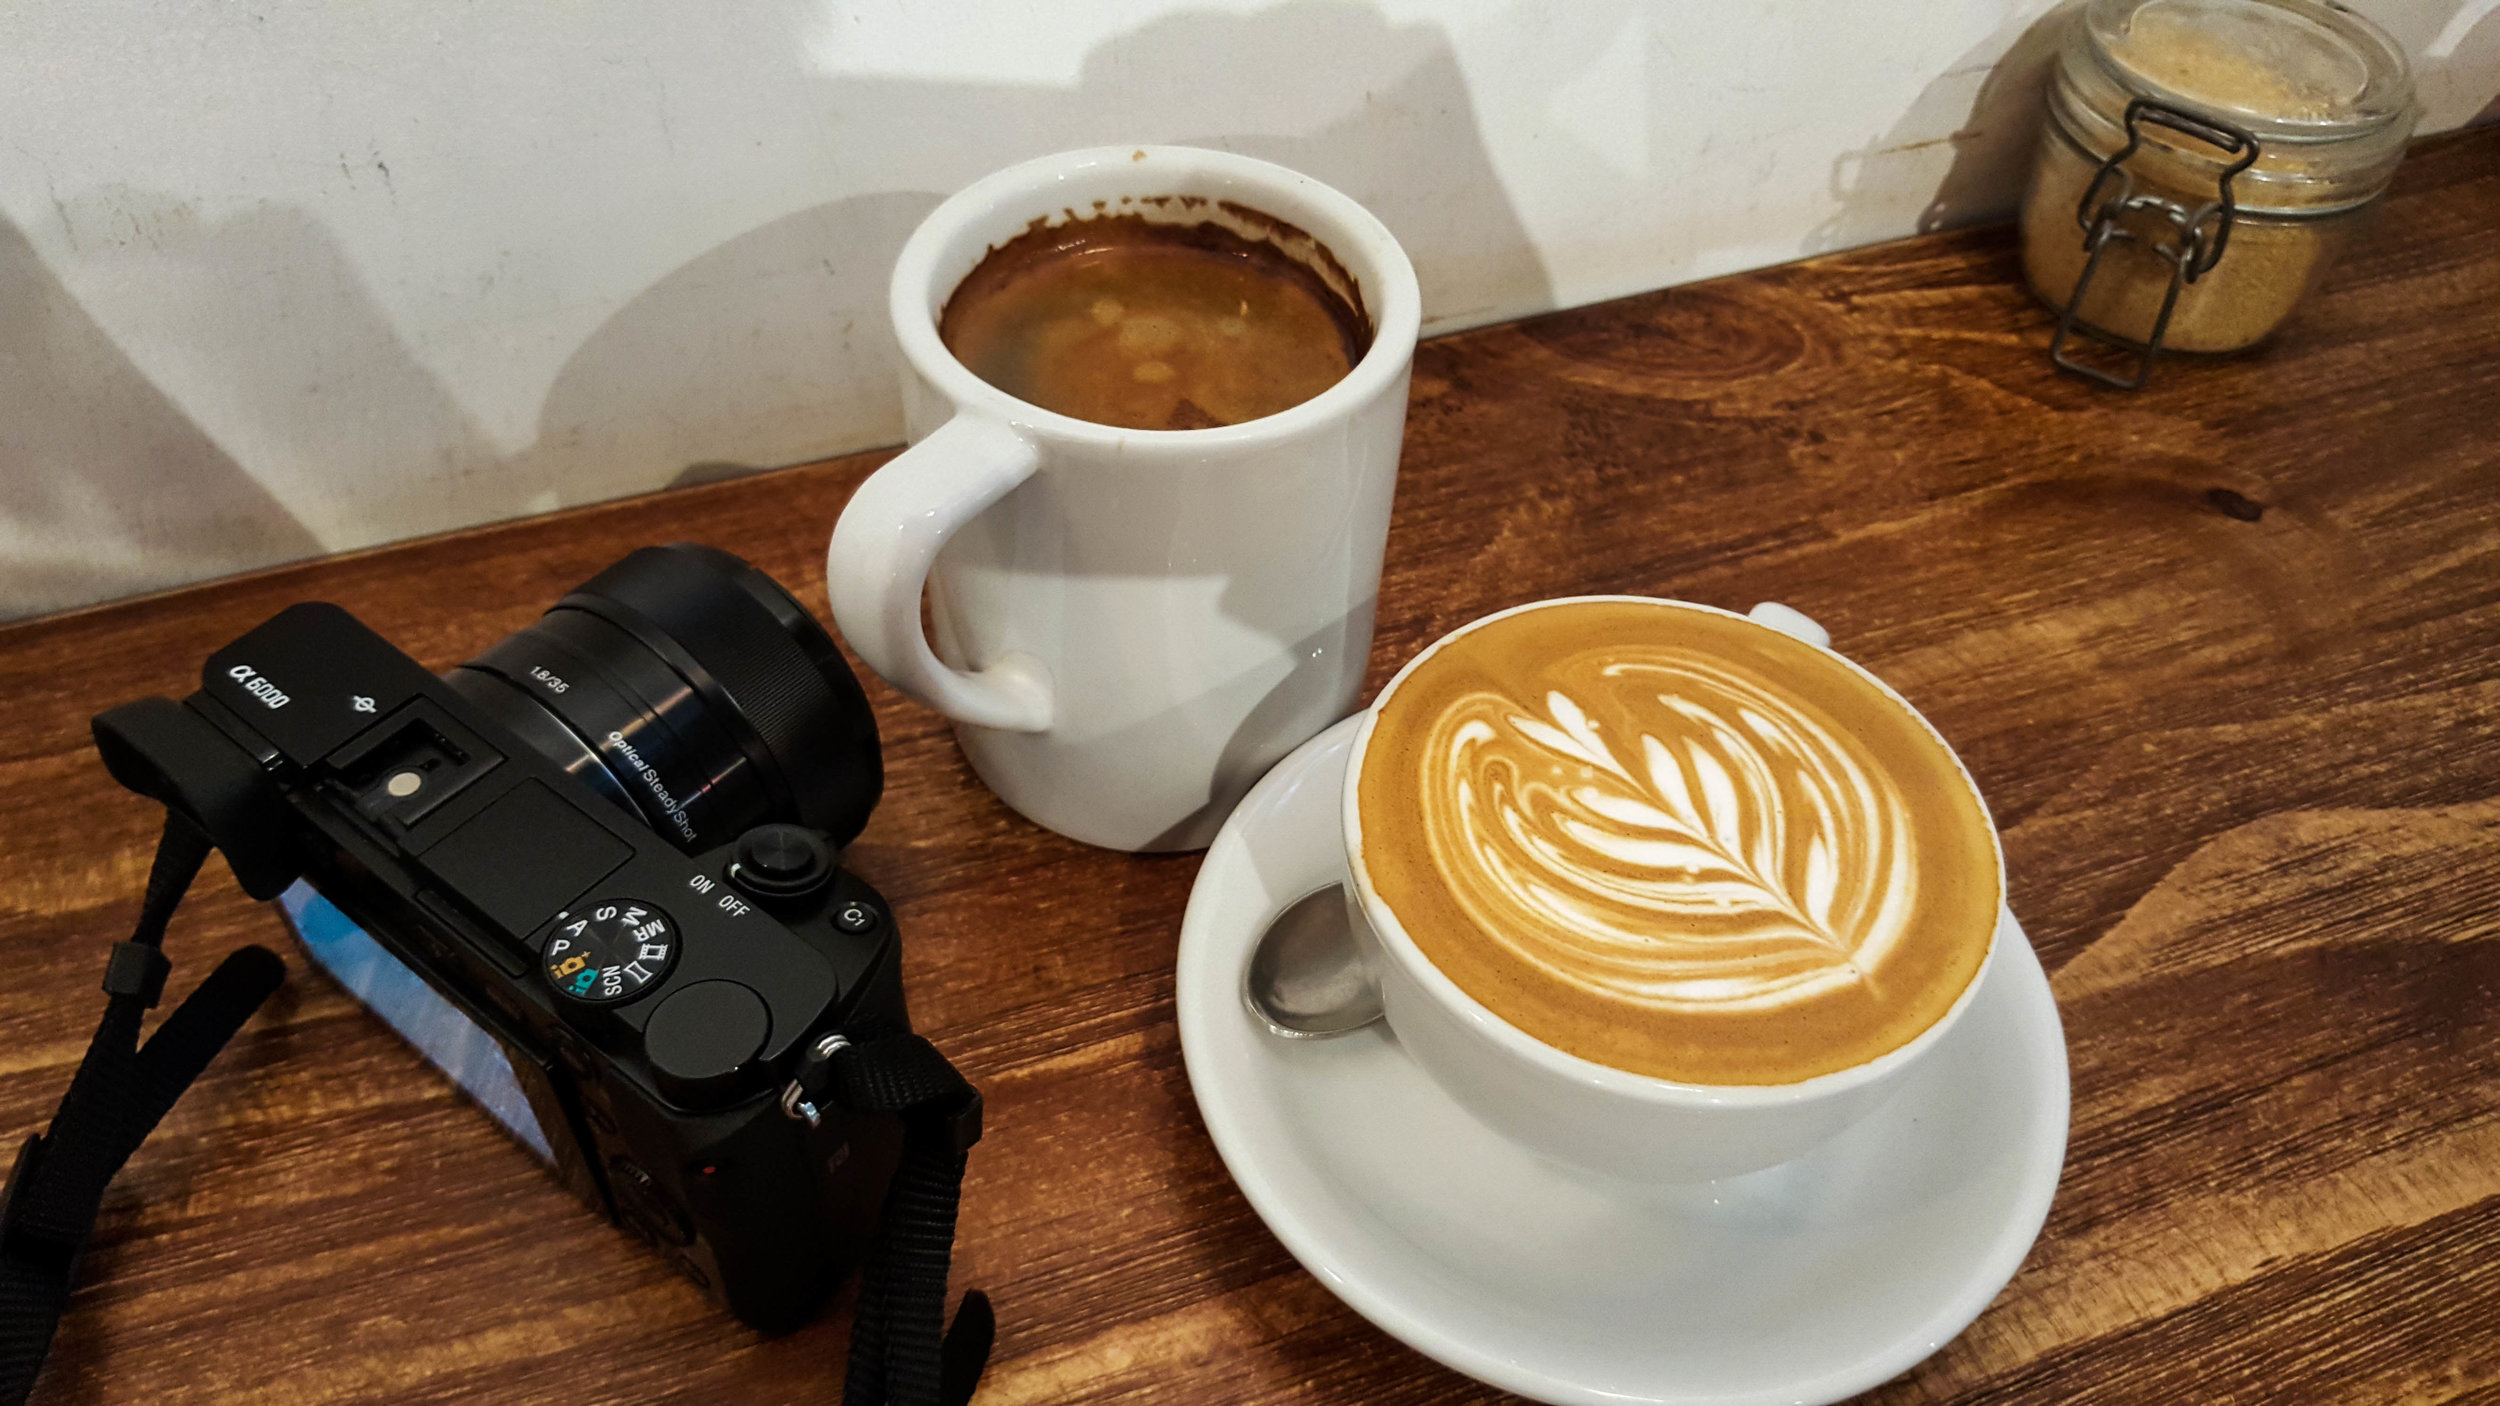 Today's essentials: Americano, Flat White, and our trusted Sony